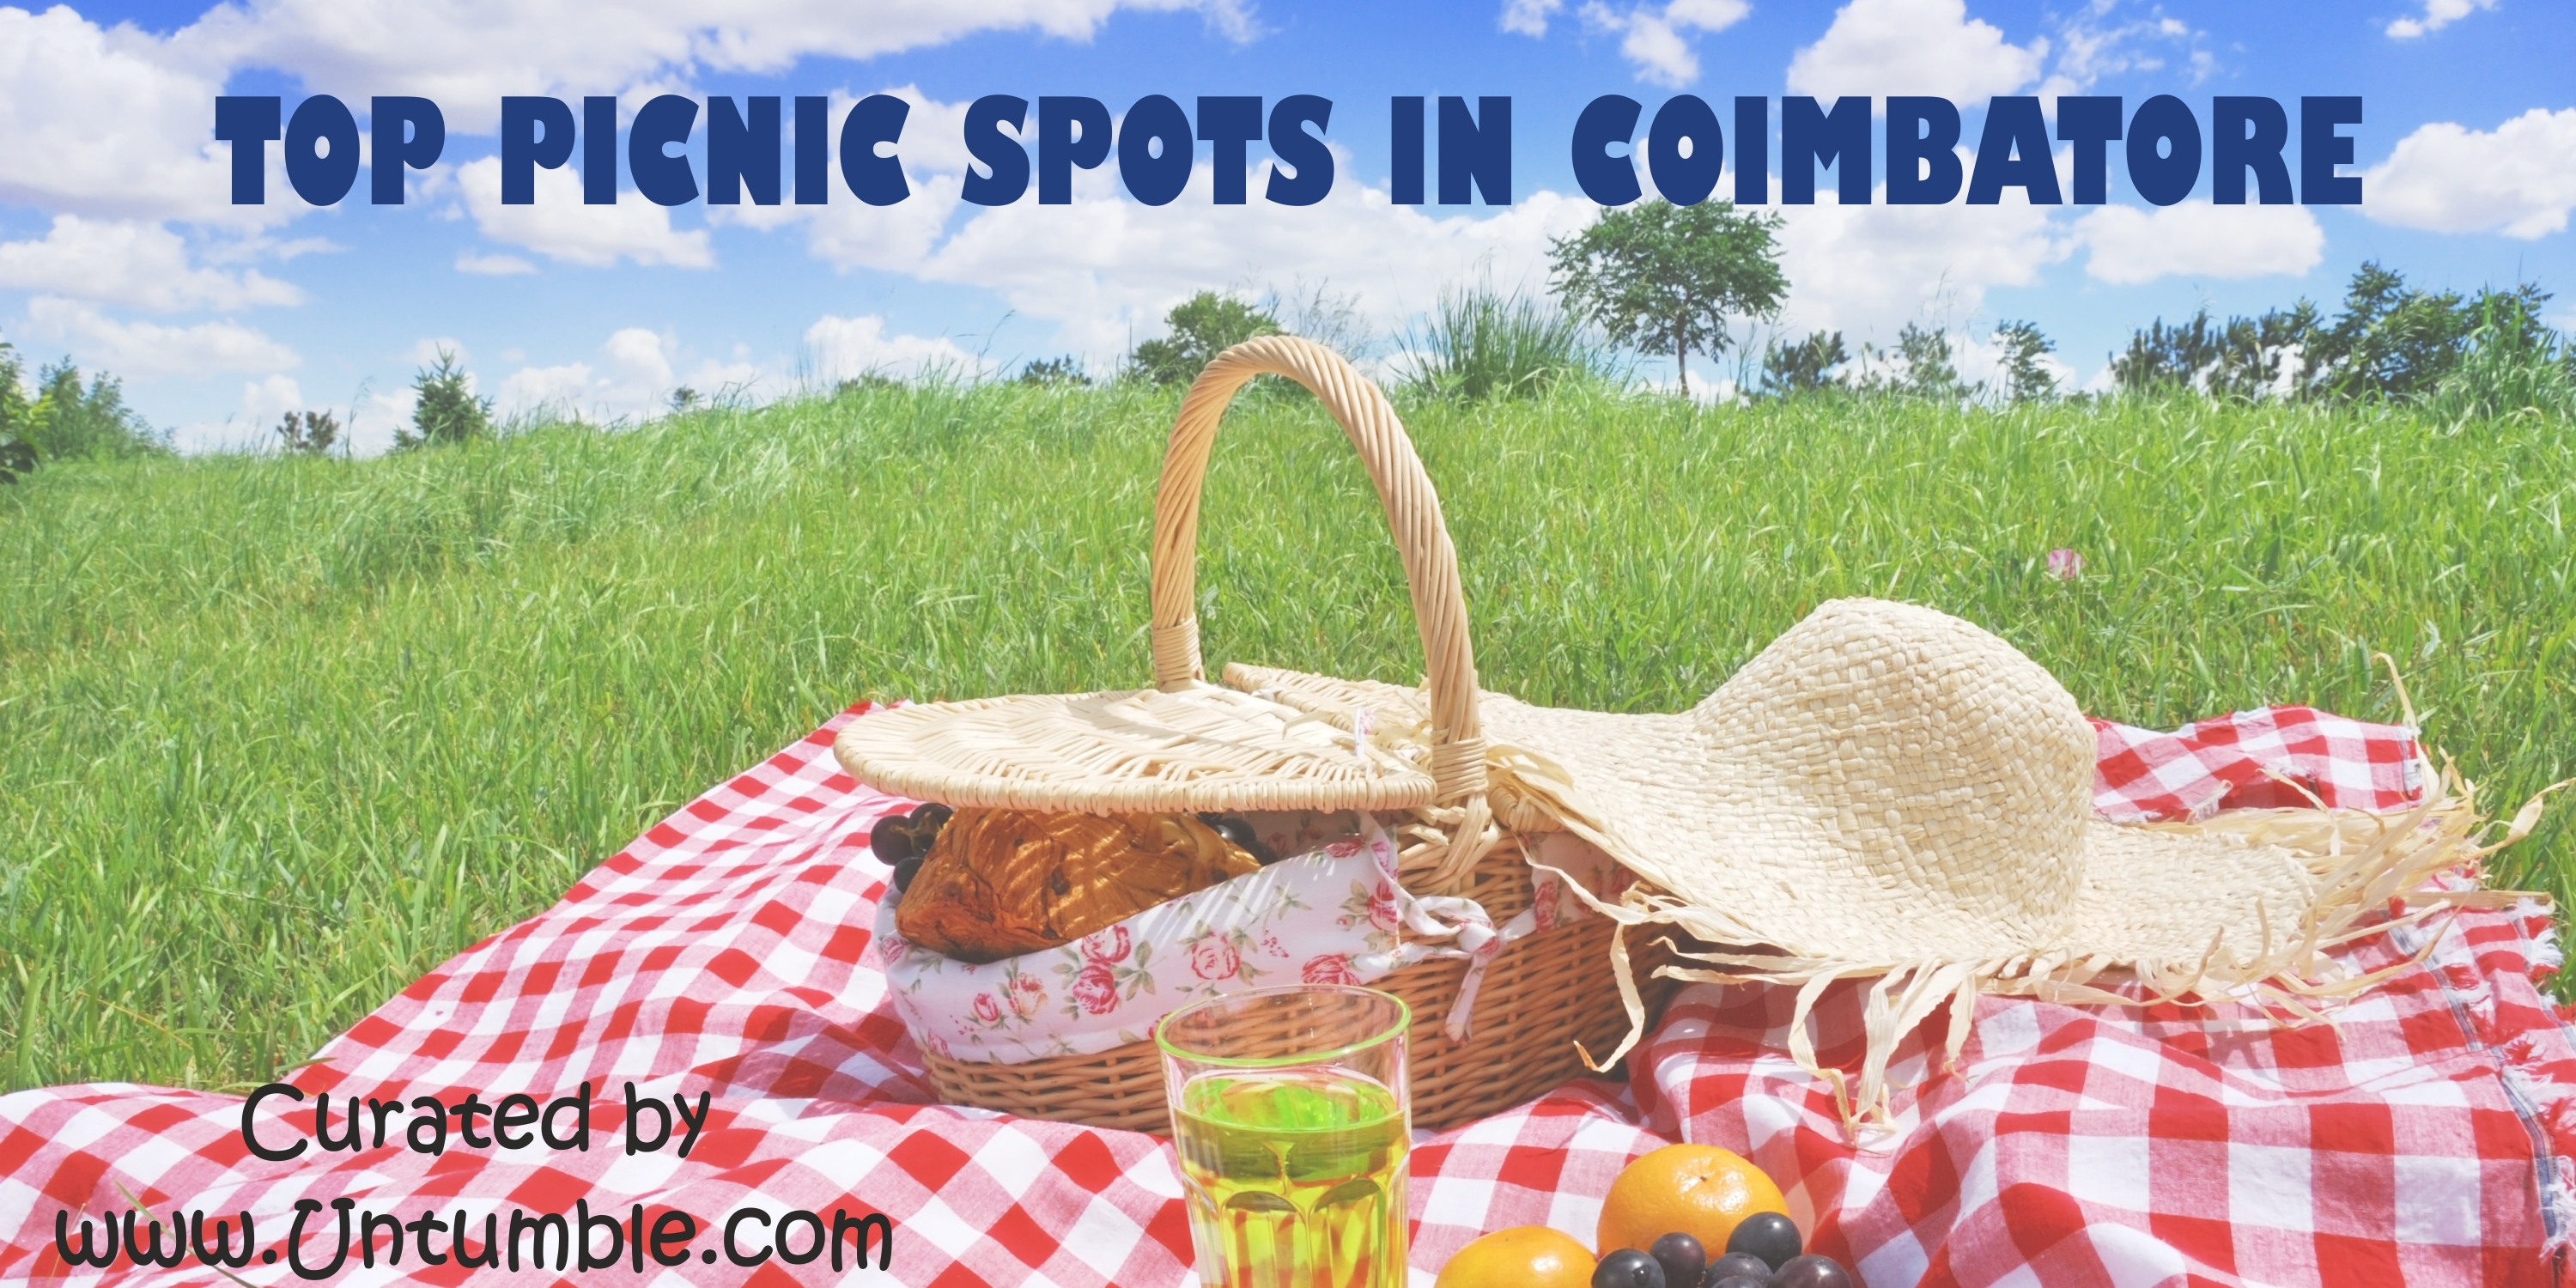 Top Picnic Spots in Coimbatore